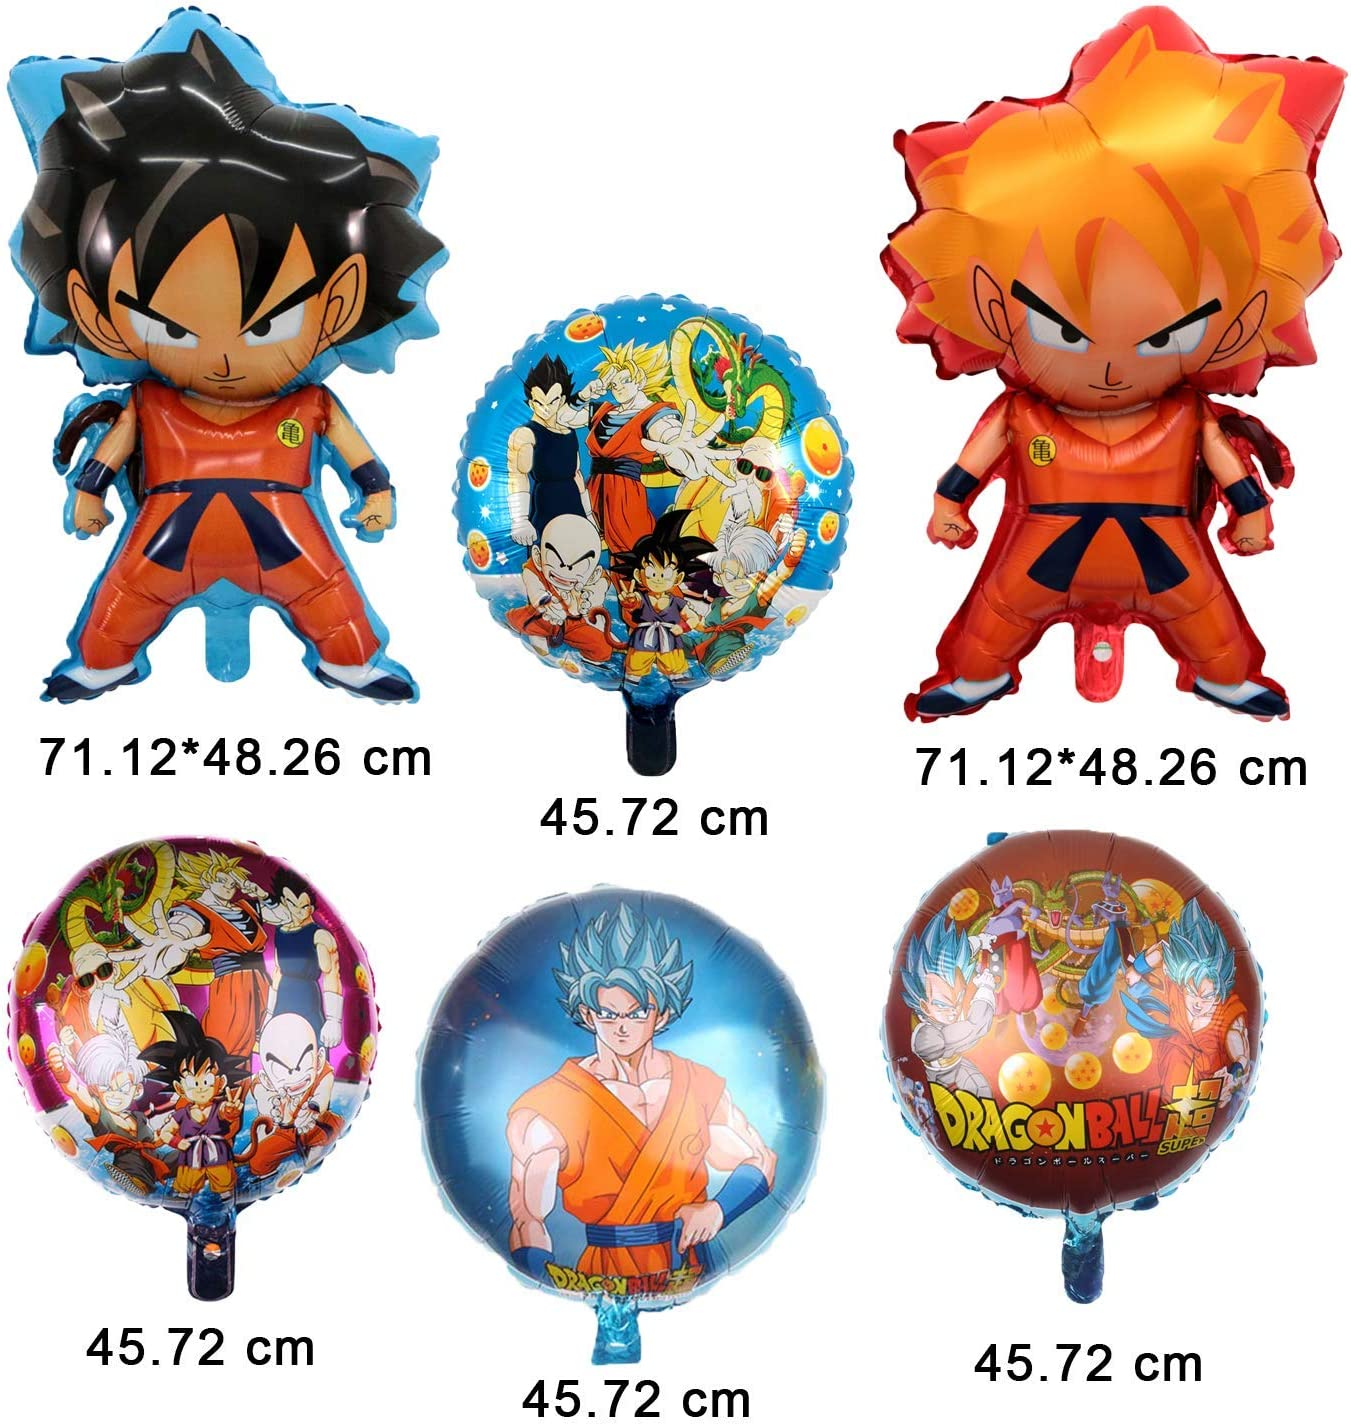 Kit de Globos de Aluminio Dragon Ball Z de 6 Piezas, decoración de ...